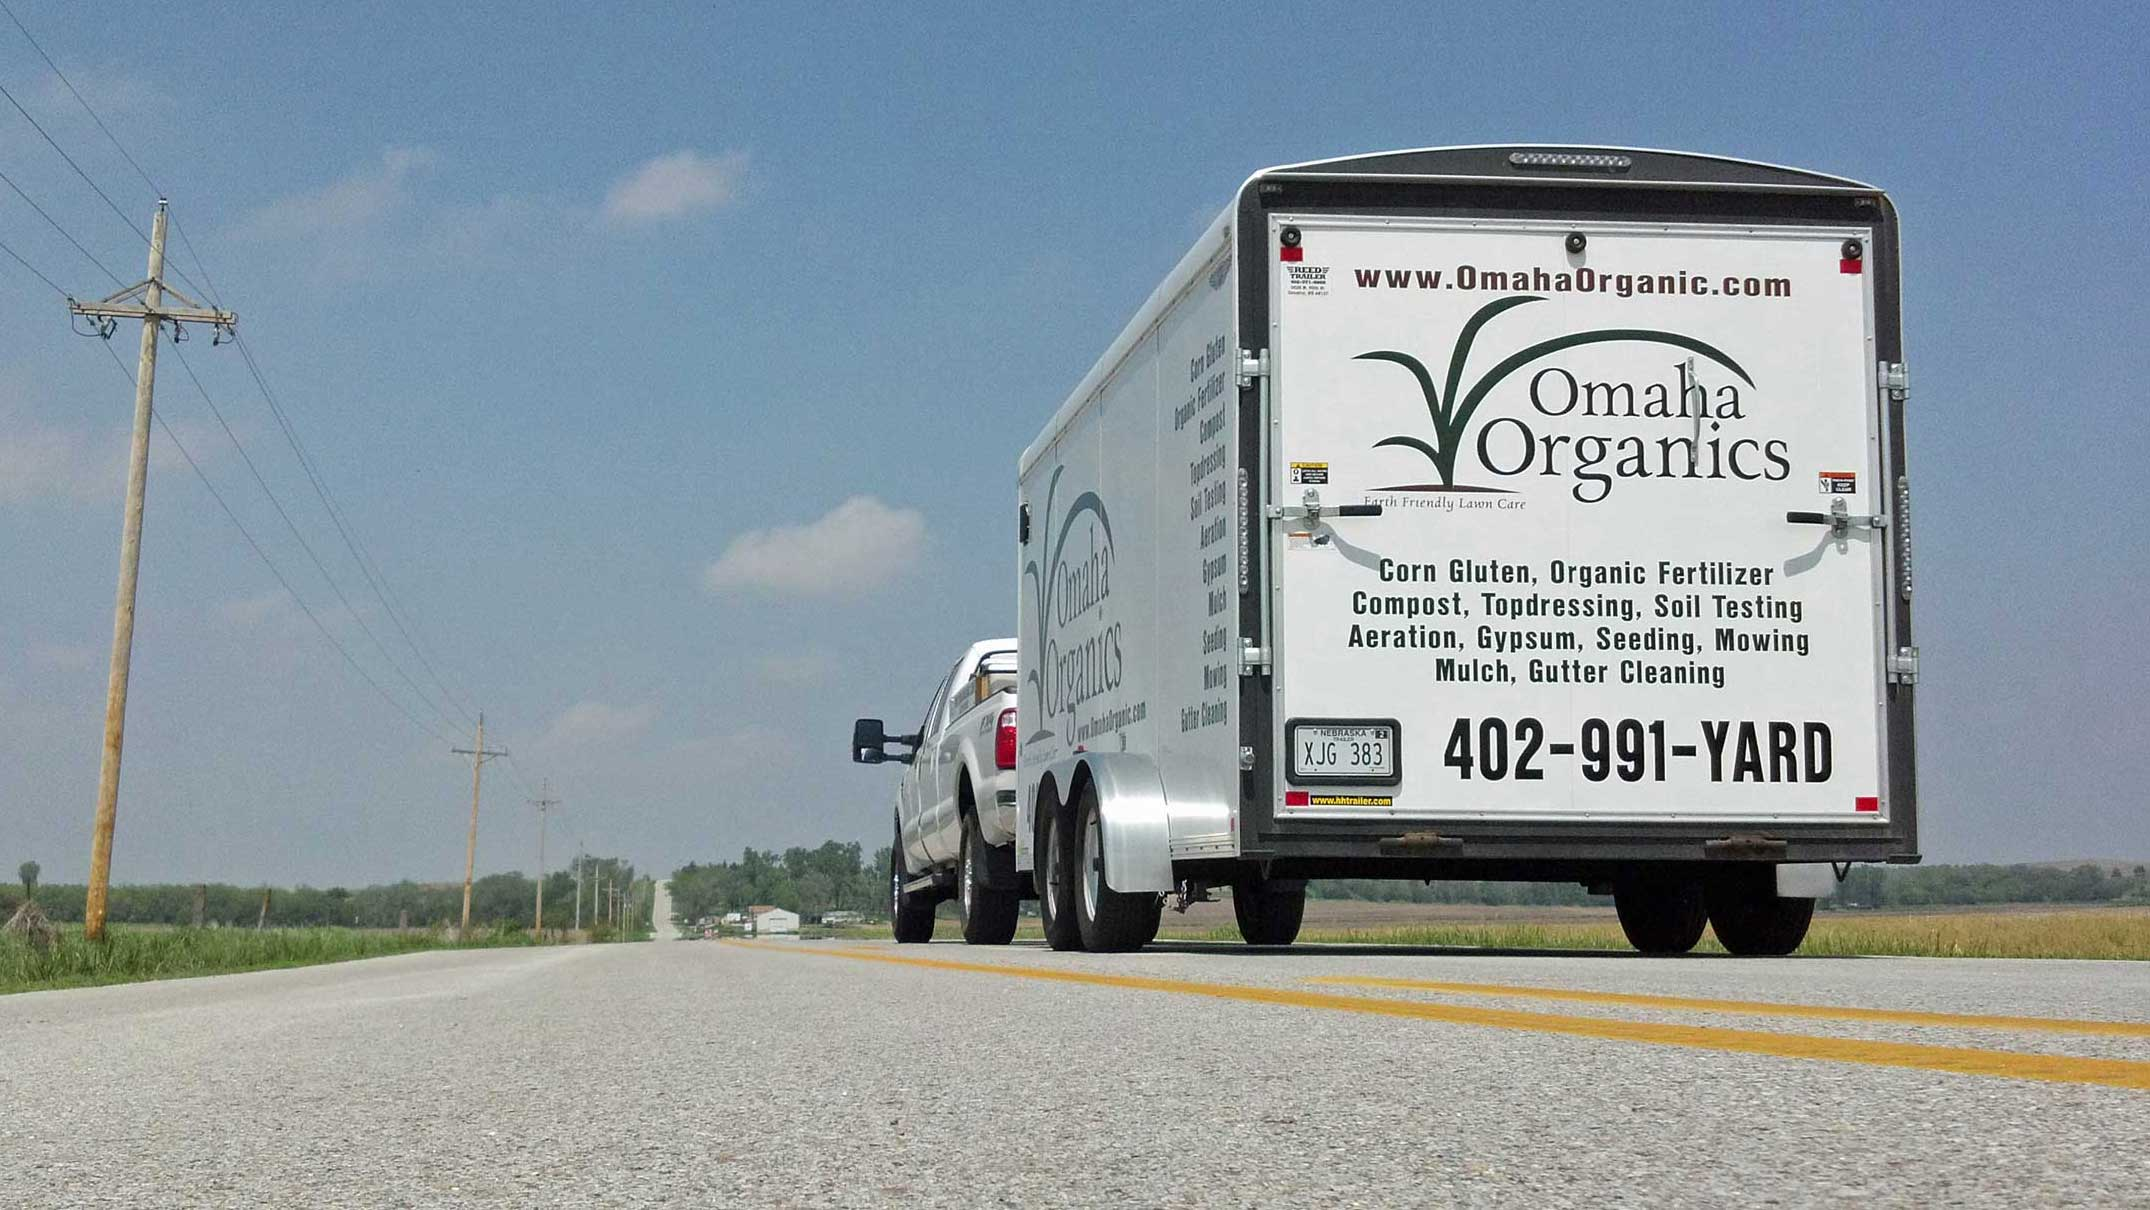 Omaha Organics truck and Trailer